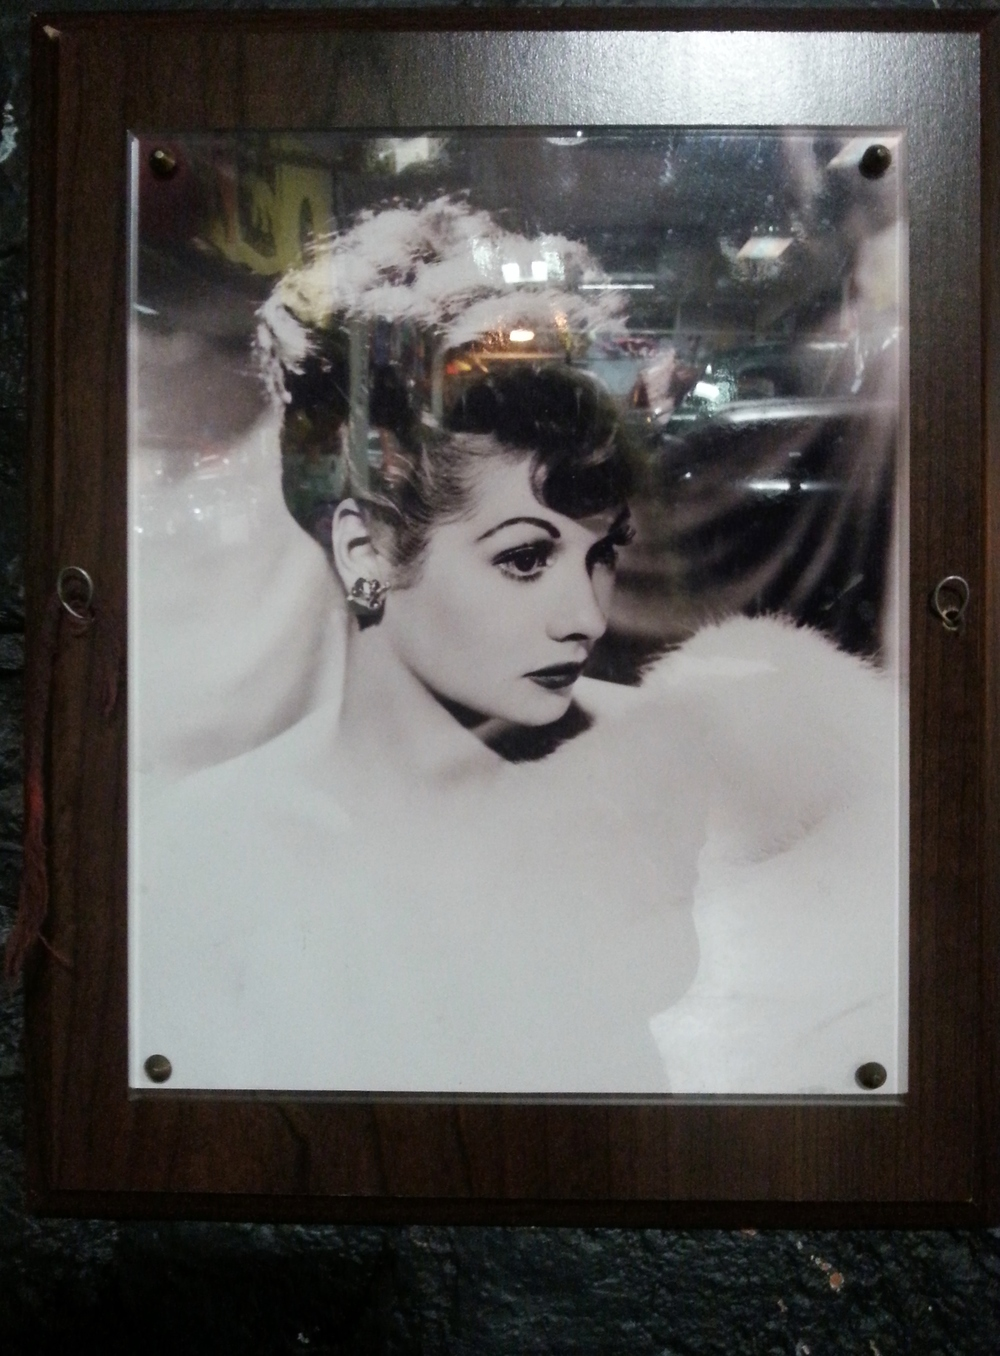 A photo of Lucille Ball can be found in our car room. Will you be able to spot it?